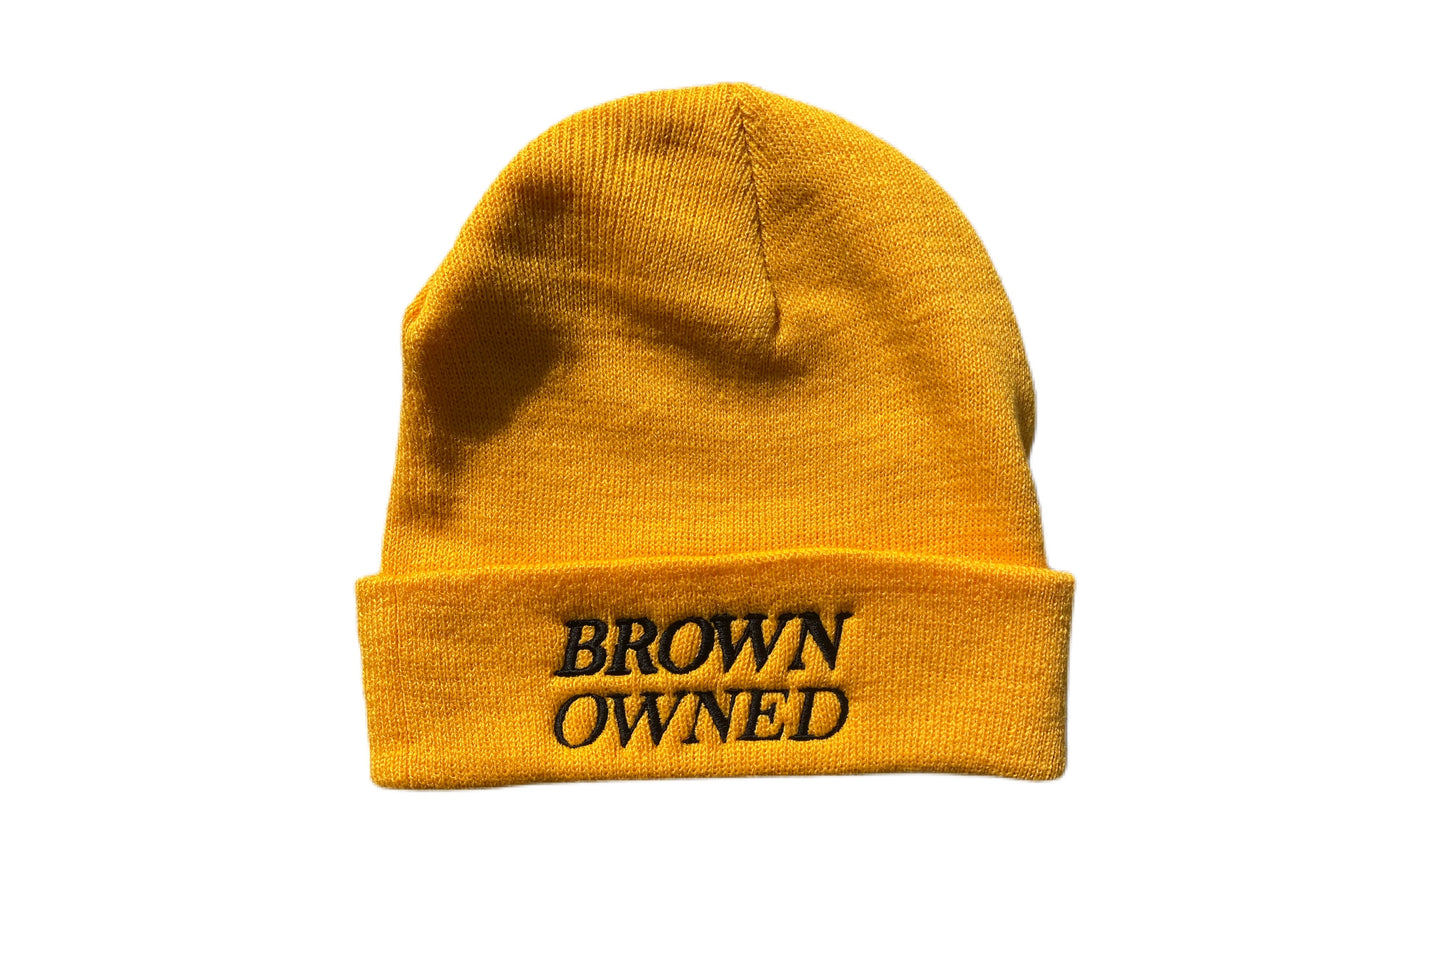 Brown Owned Yellow Beanie